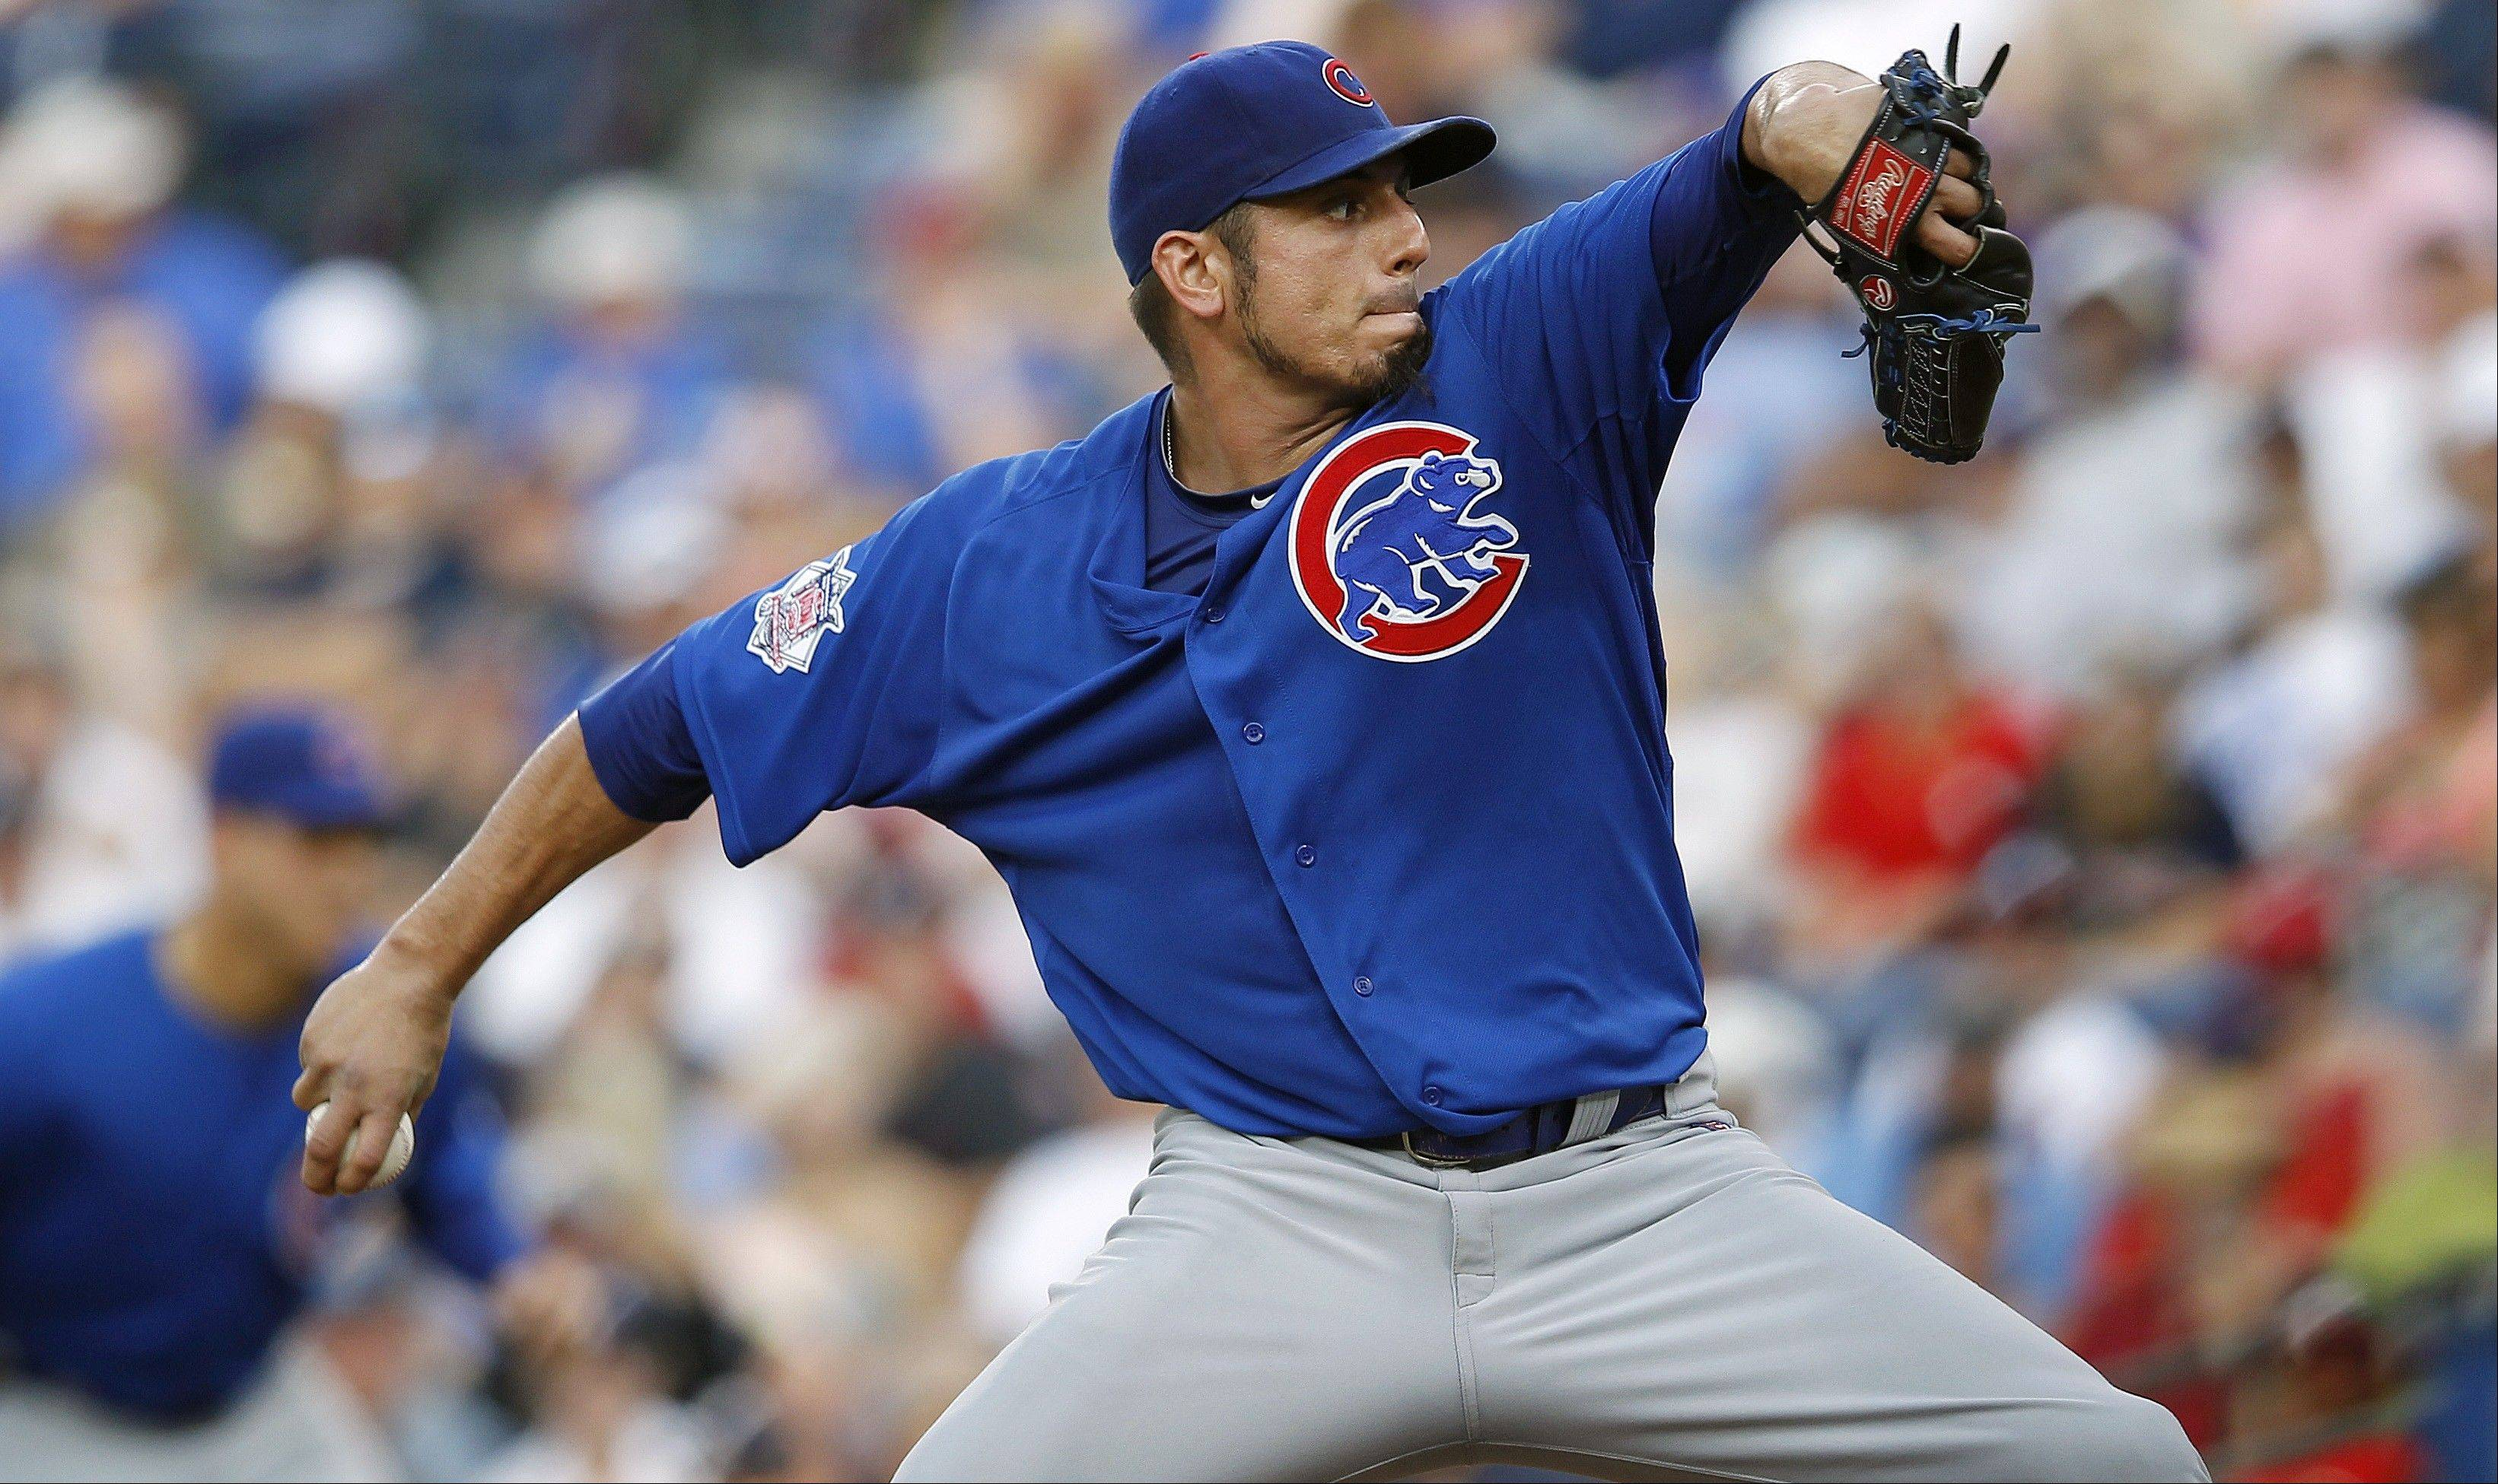 In each of his three seasons with the Cubs, starting pitcher Matt Garza has spent time on the disabled list.